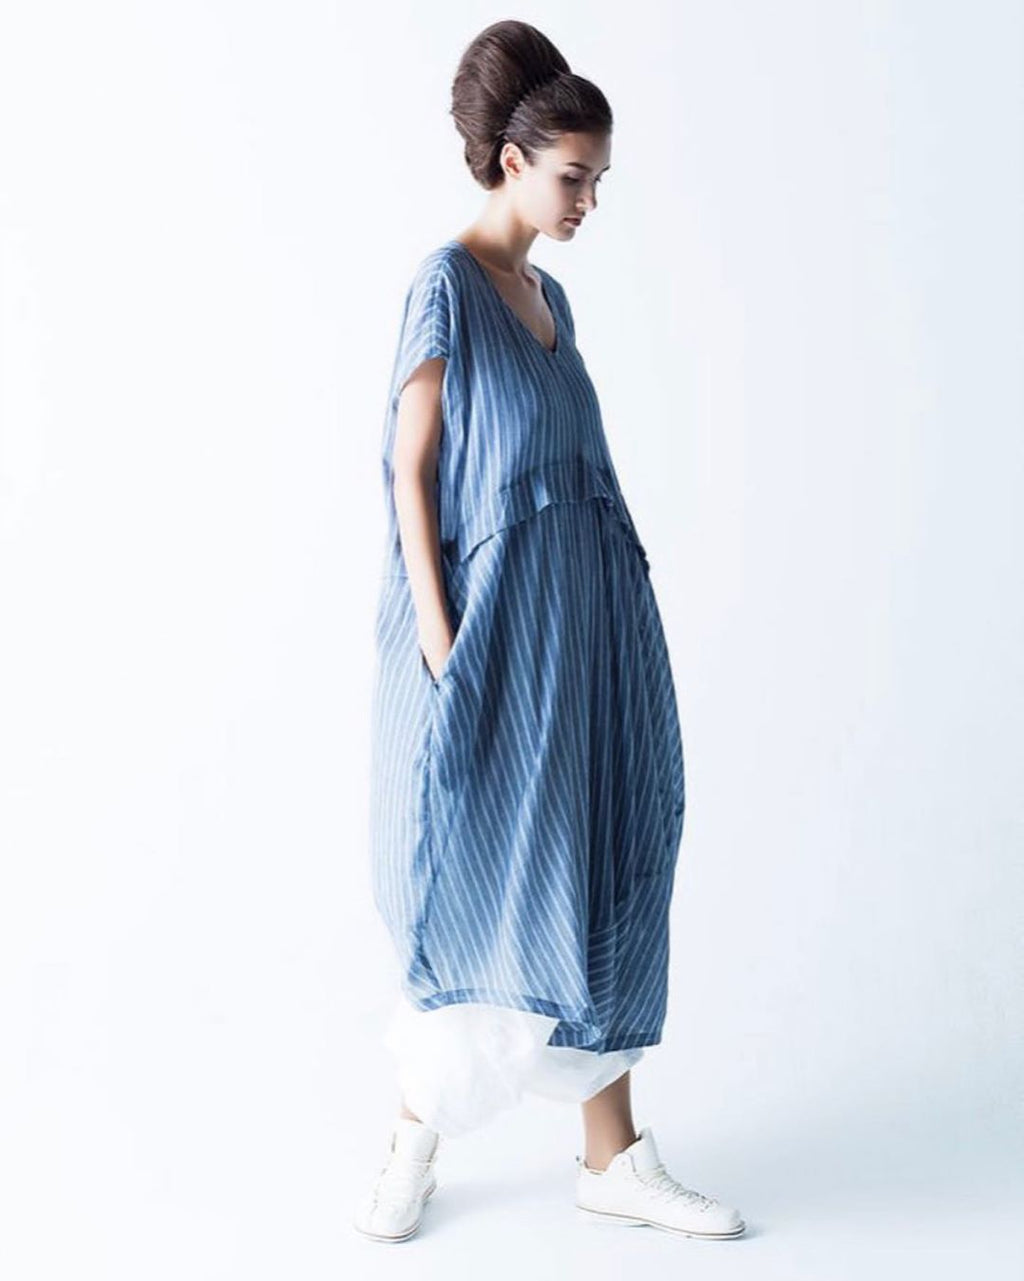 Moyuru Blue stripe dress 191662